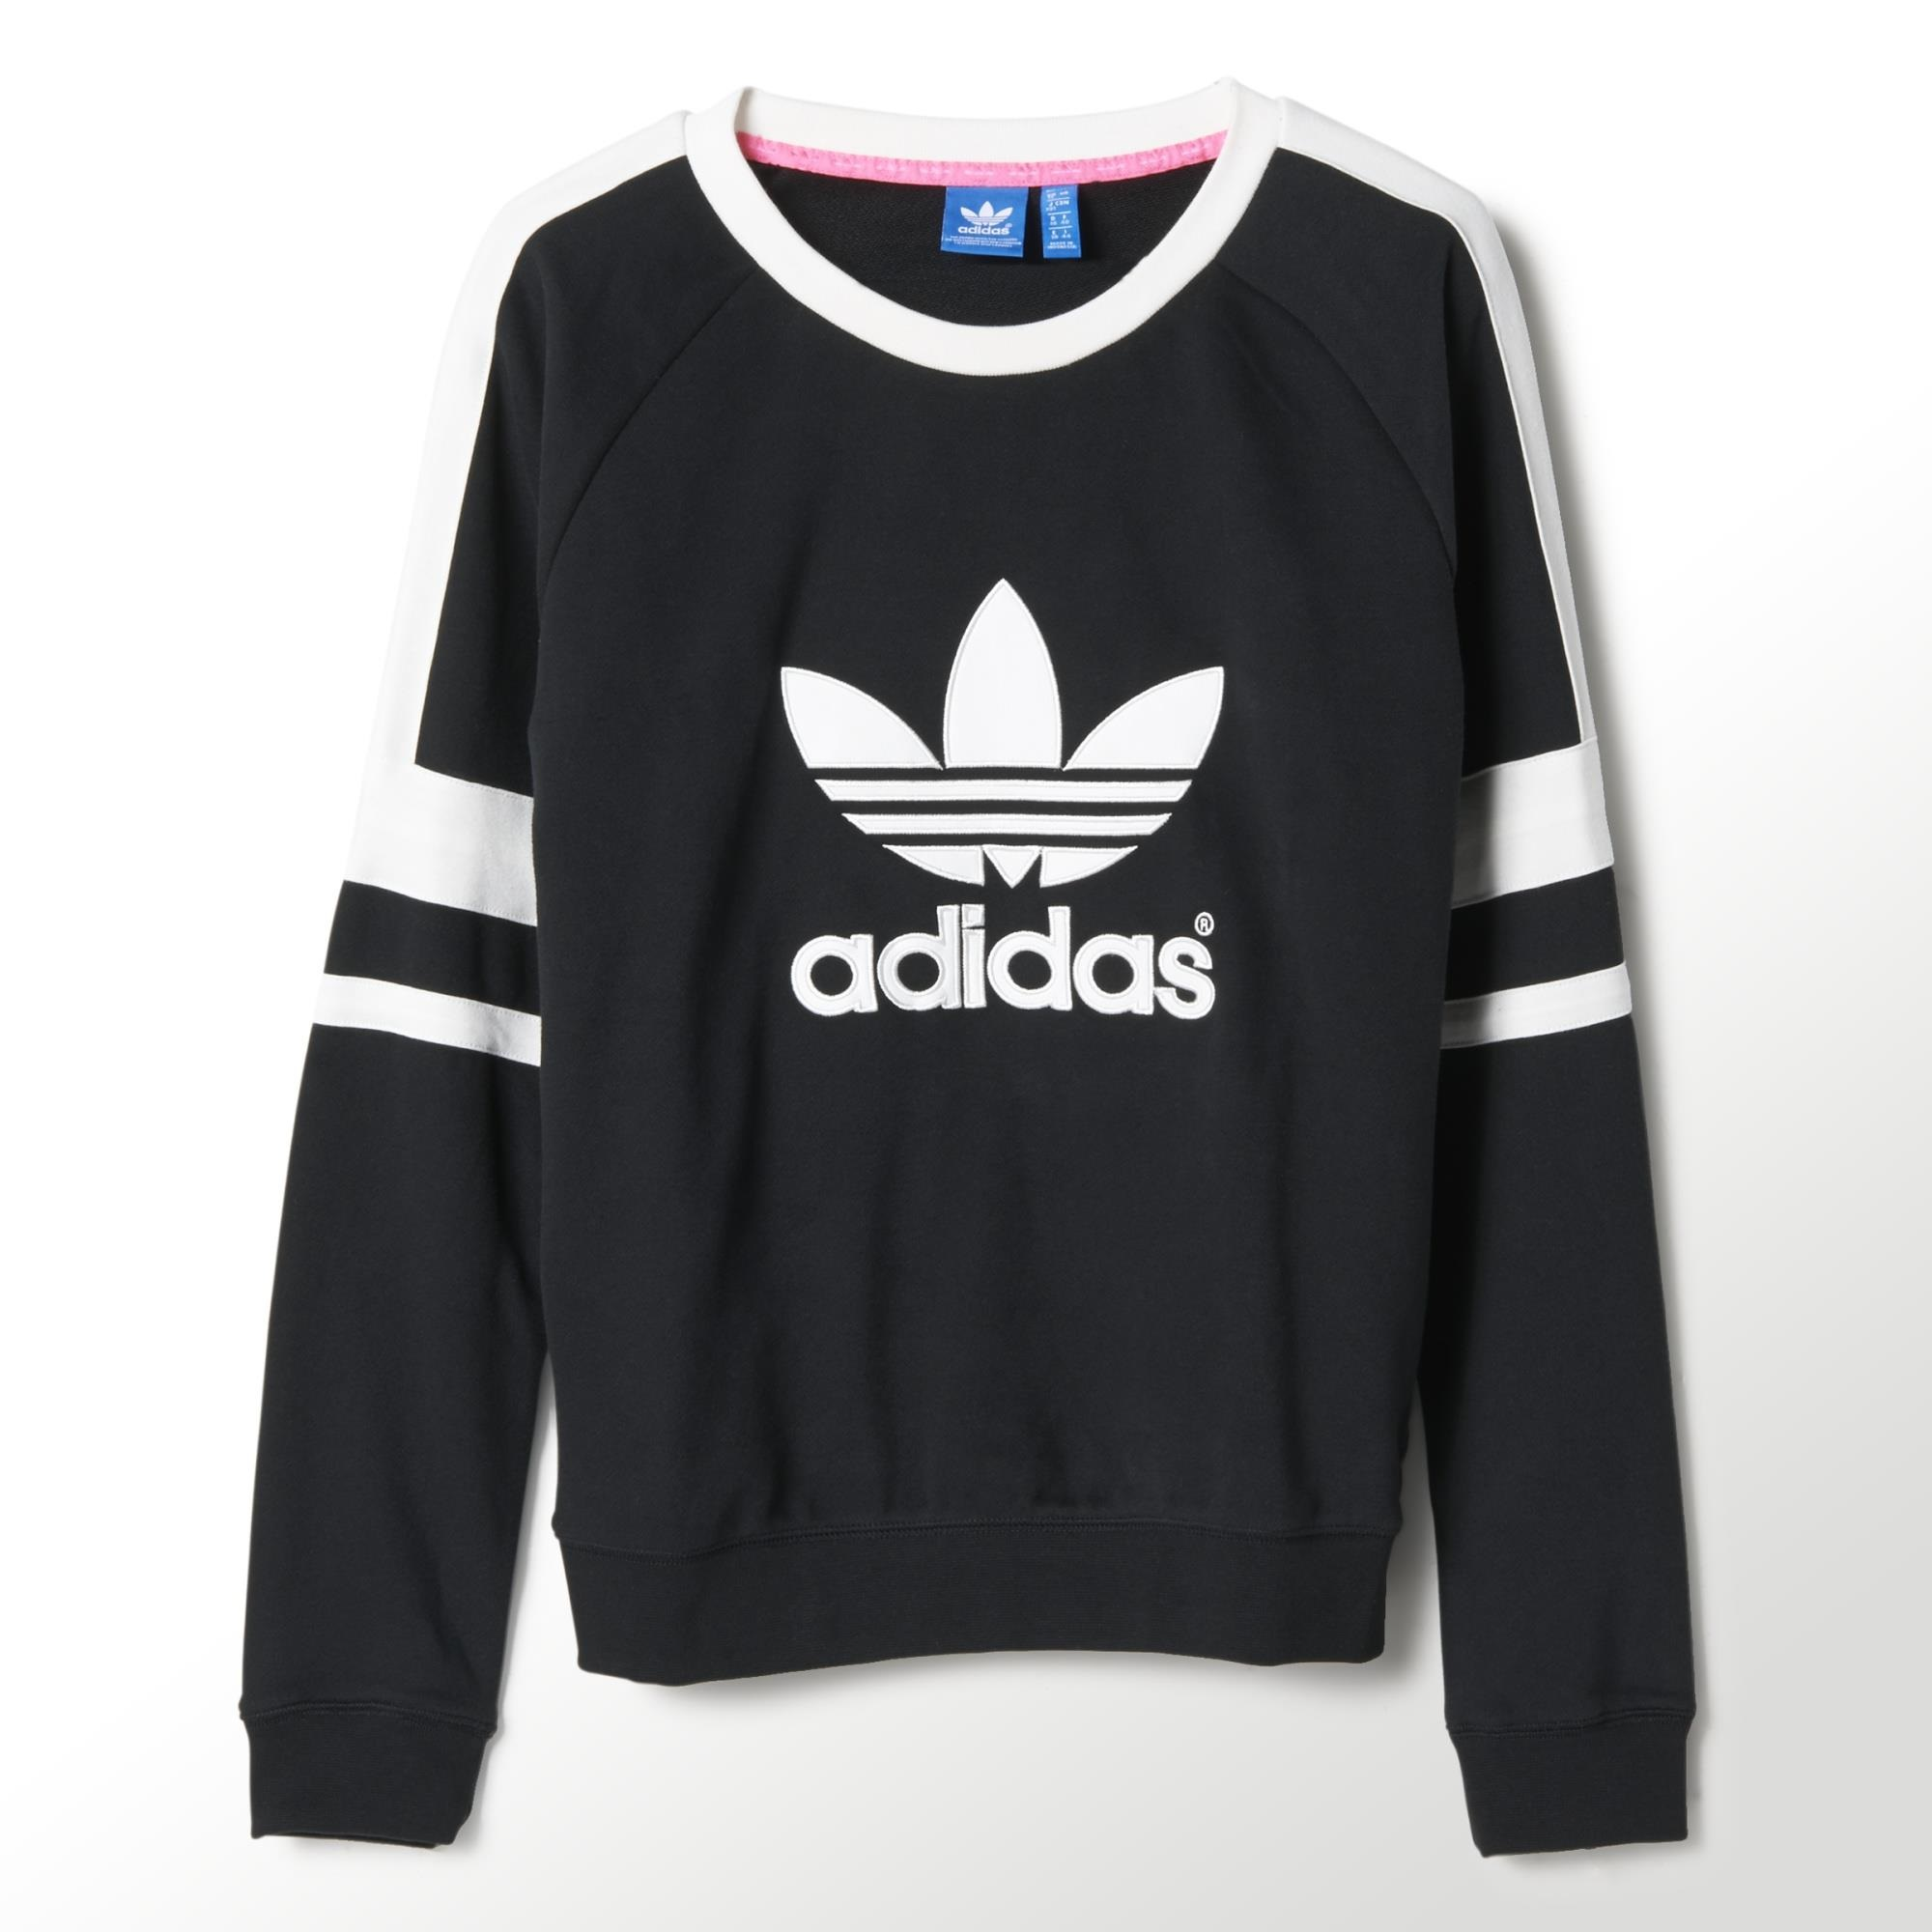 adidas girls clothes